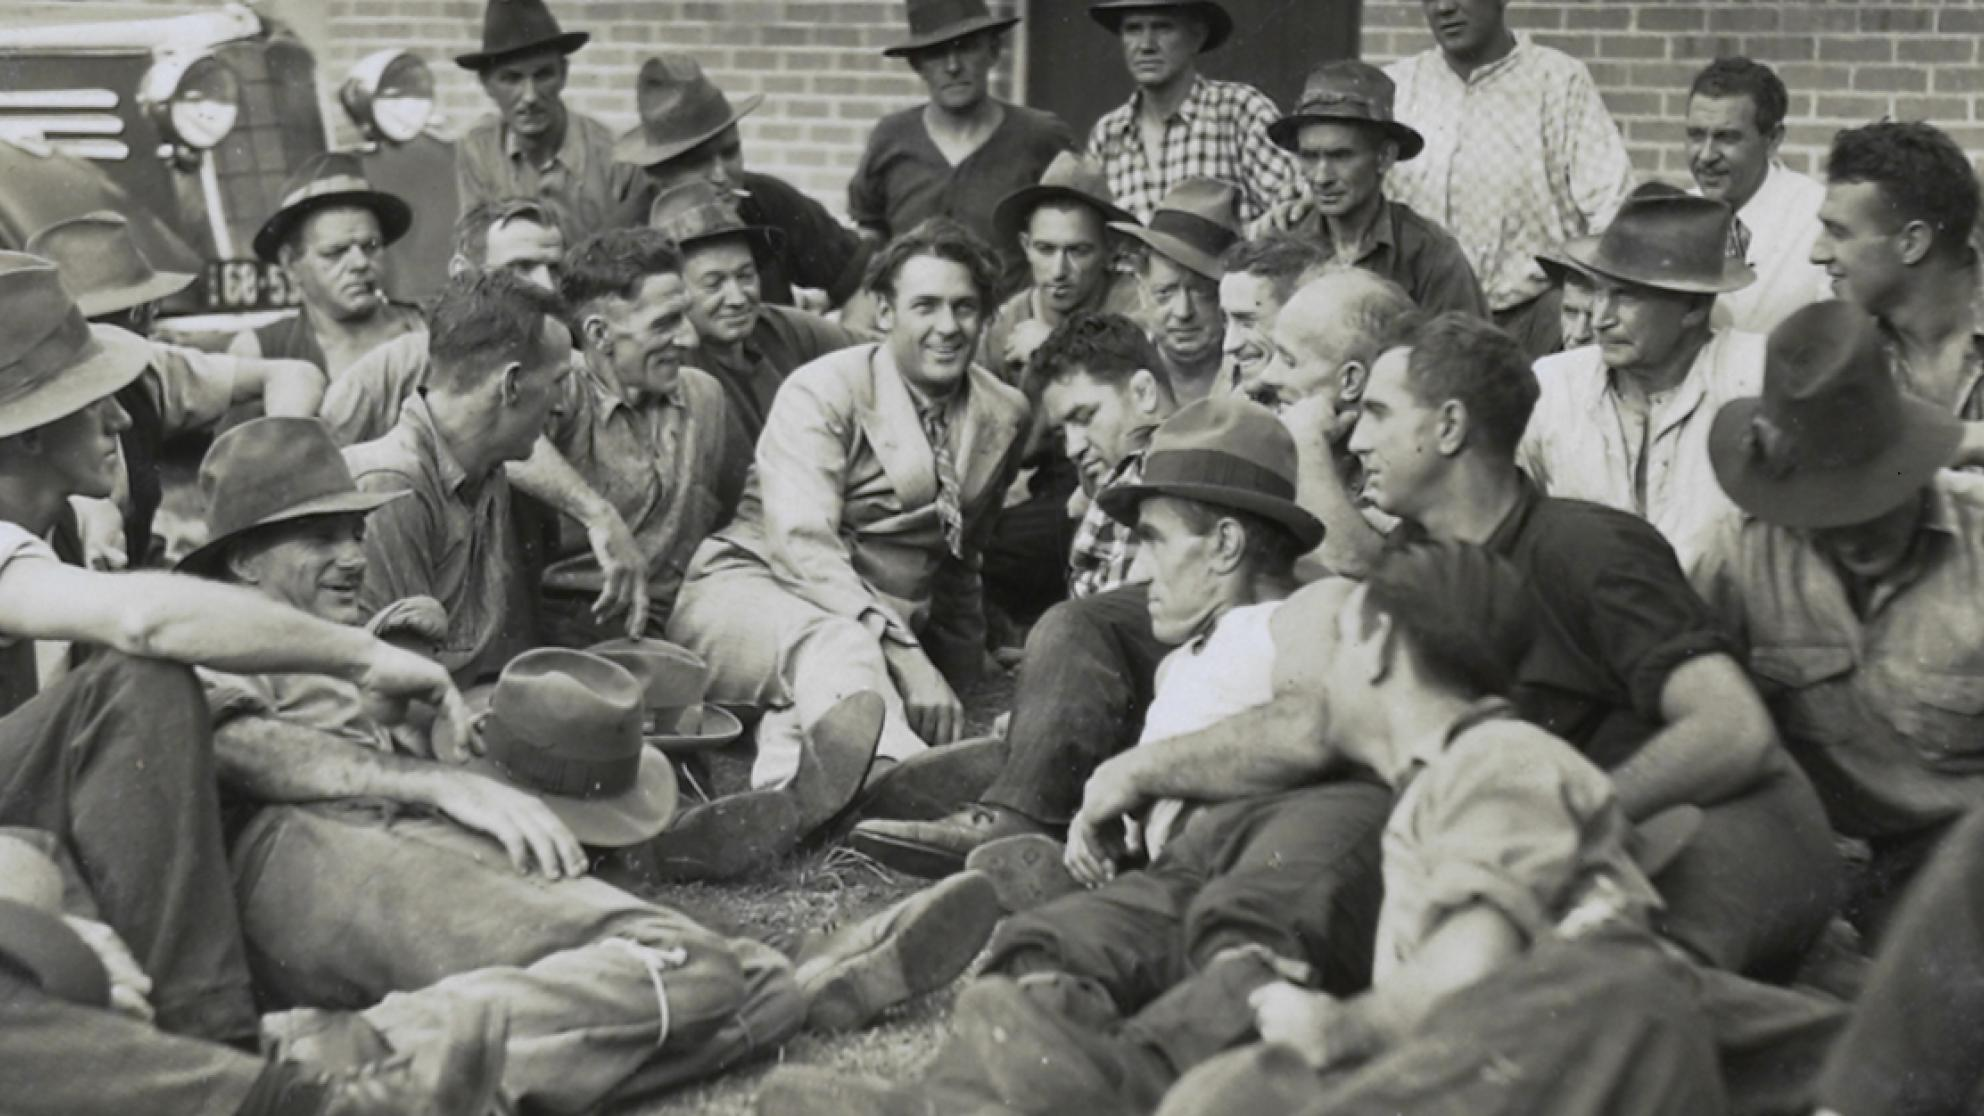 Actor Charles Farrell reclines on the ground surrounded by a crowd of men.